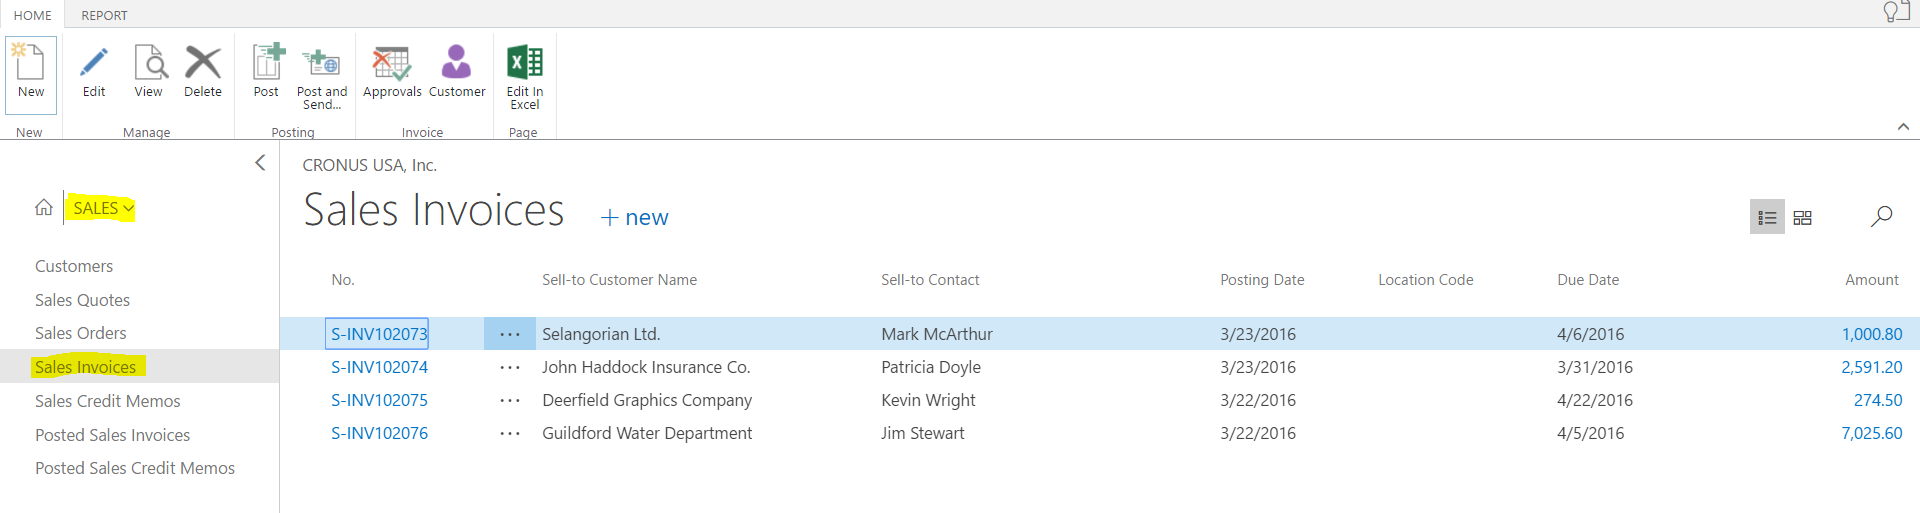 Microsoft Dynamics 365 for Financials – Create Sales Invoice